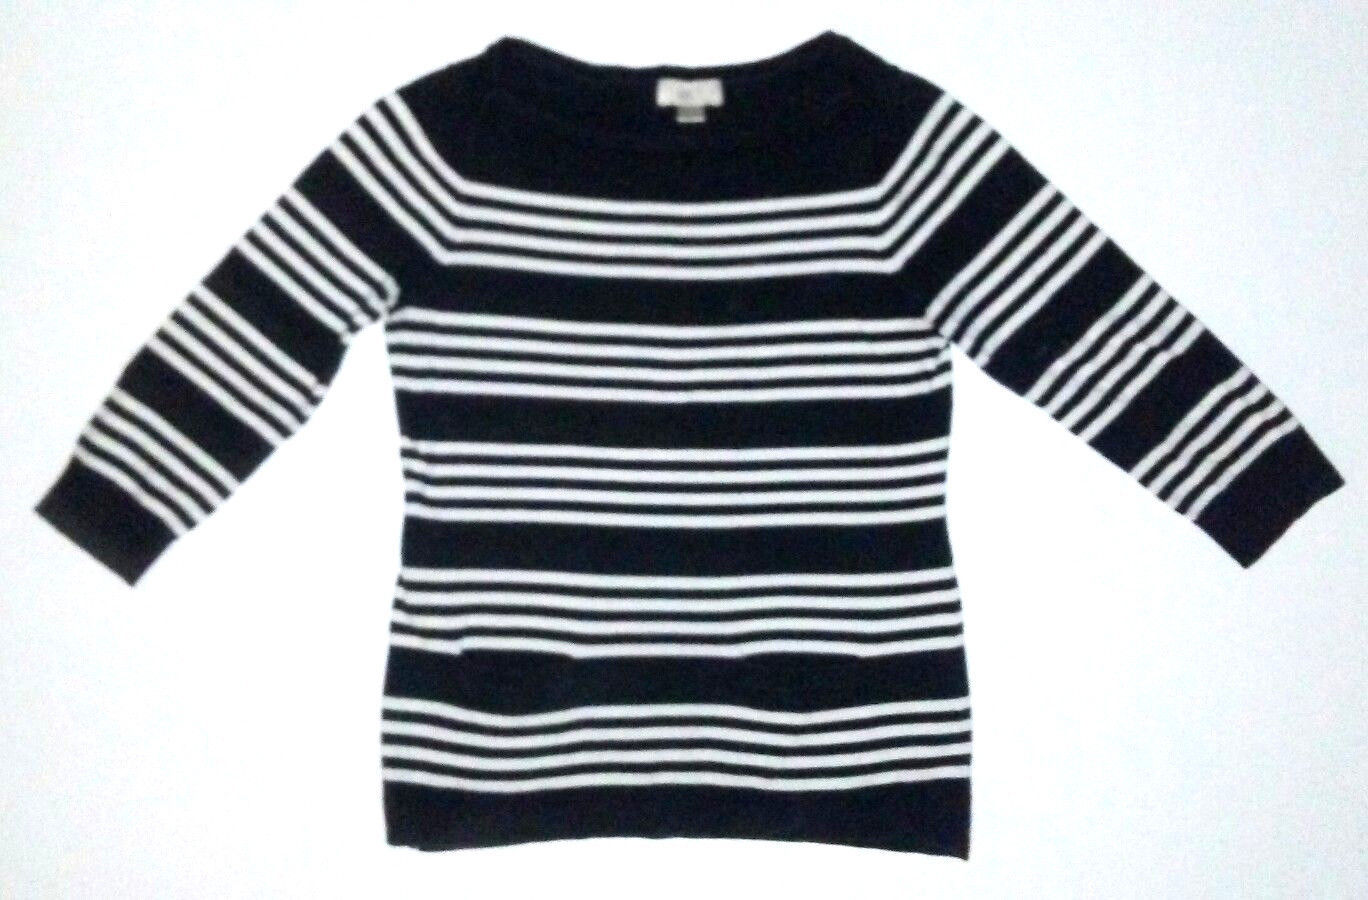 0ed36862365 57. 57. Previous. Ann Taylor Loft Women s Black White Striped 3 4 Sleeve  Sweater Size Small